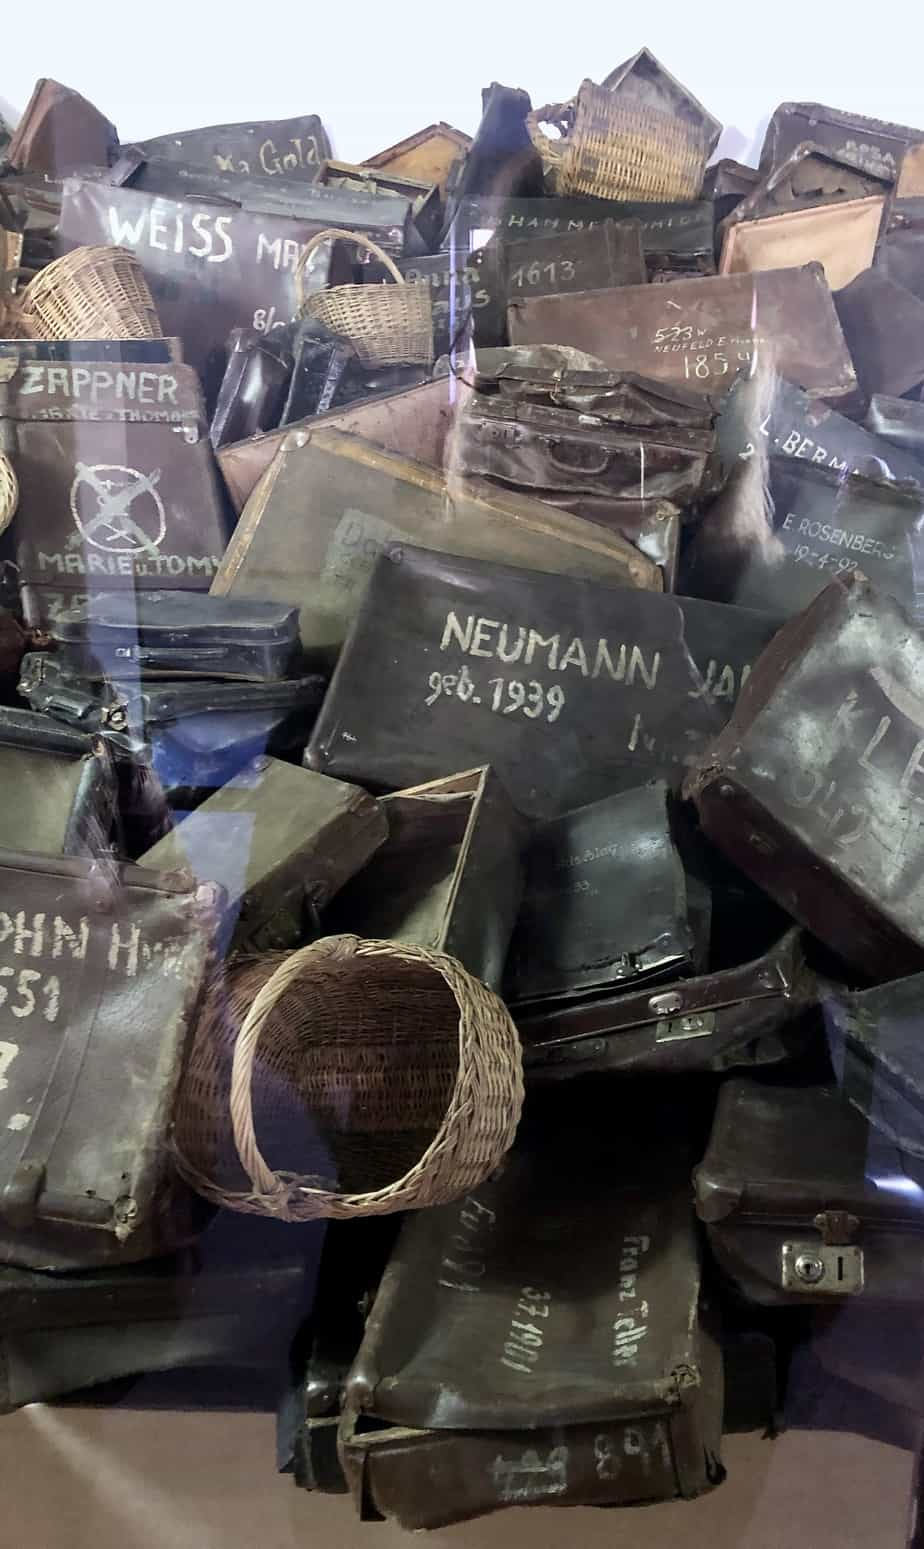 Confiscated-luggage-at-Auschwitz